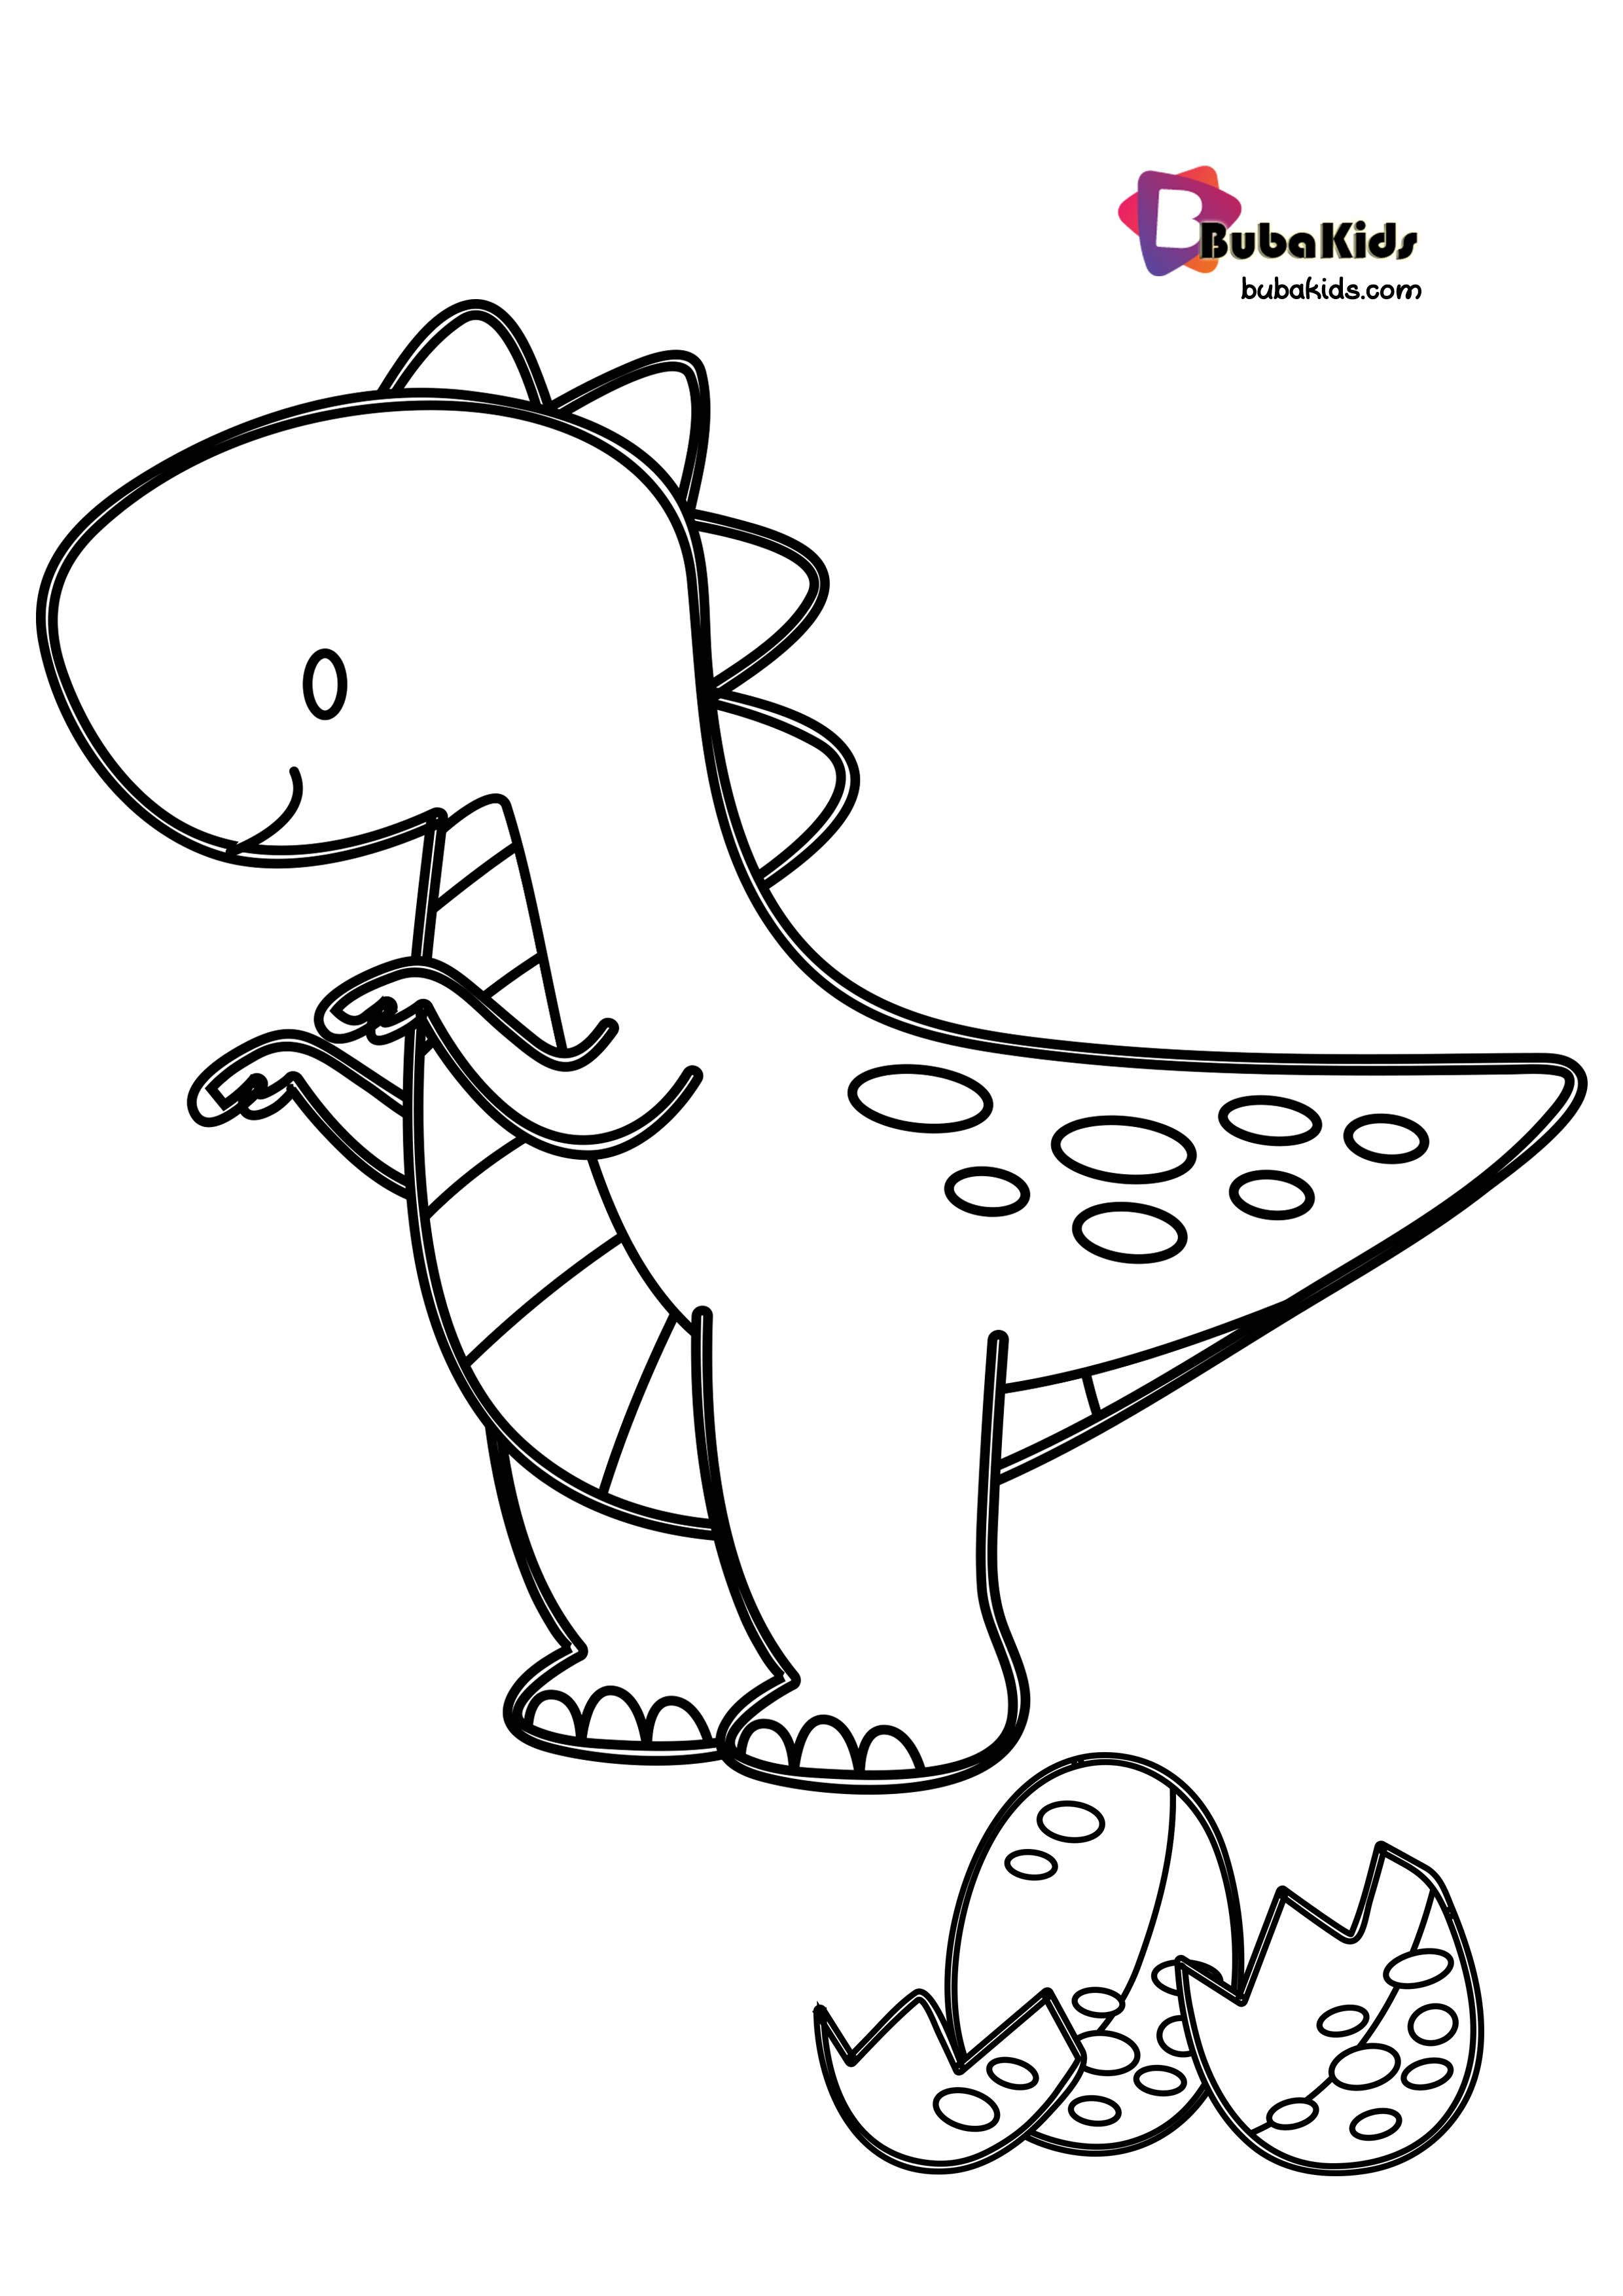 Baby Trex Coloring Page With Egg Dinosaurscoloringpage Trex Dinosaurs Coloring Pages Dinosaur Coloring Pages Puppy Coloring Pages Coloring Pages